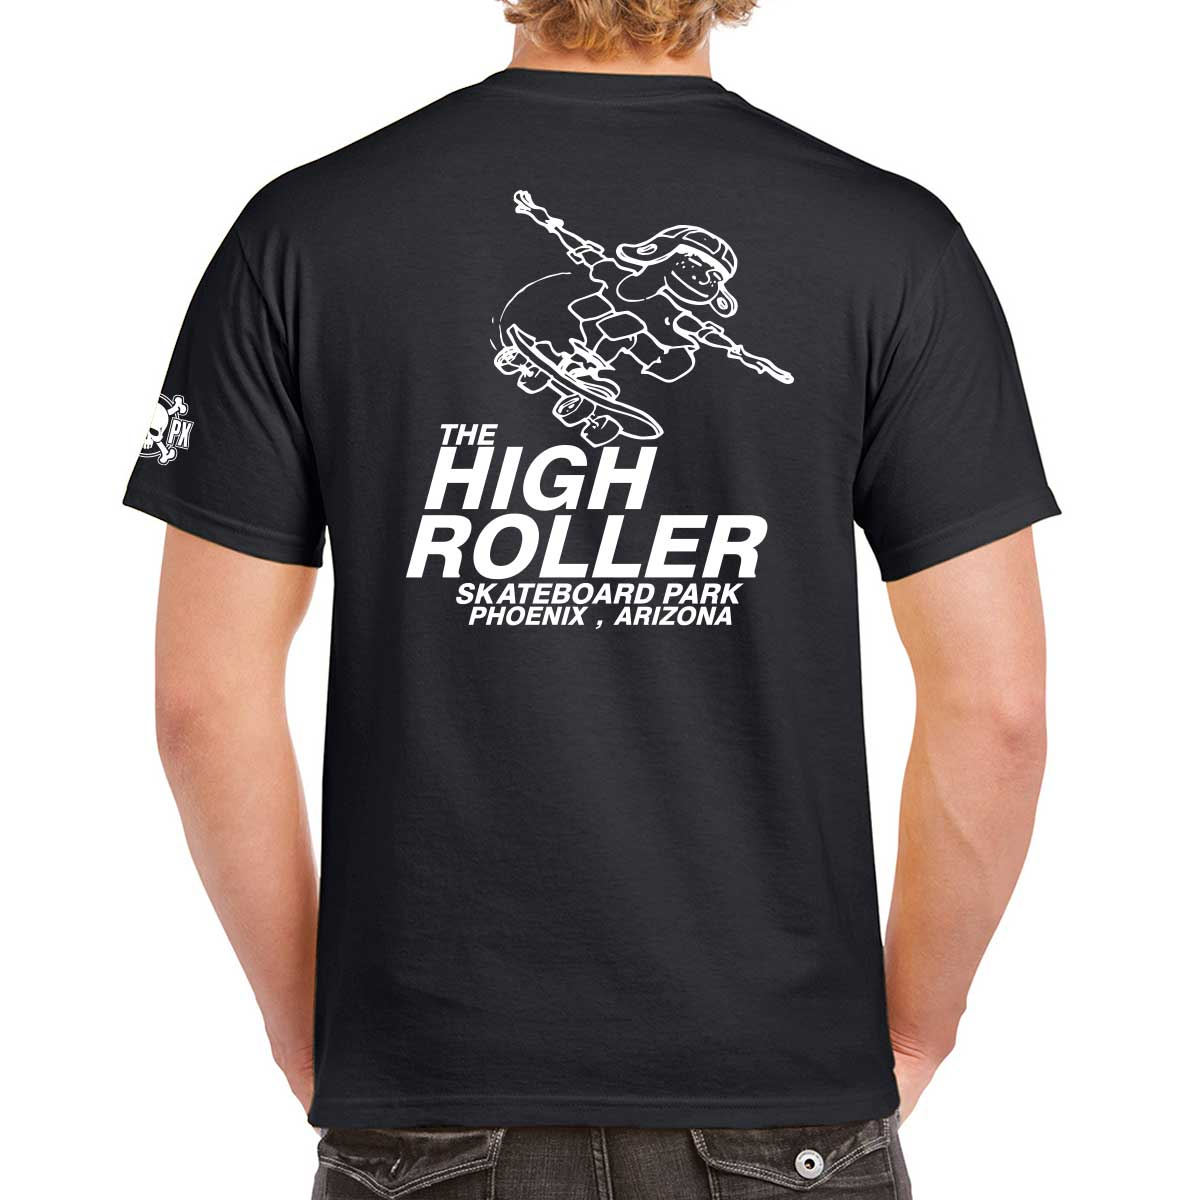 The High Roller Skateboard Park Black T-shirt